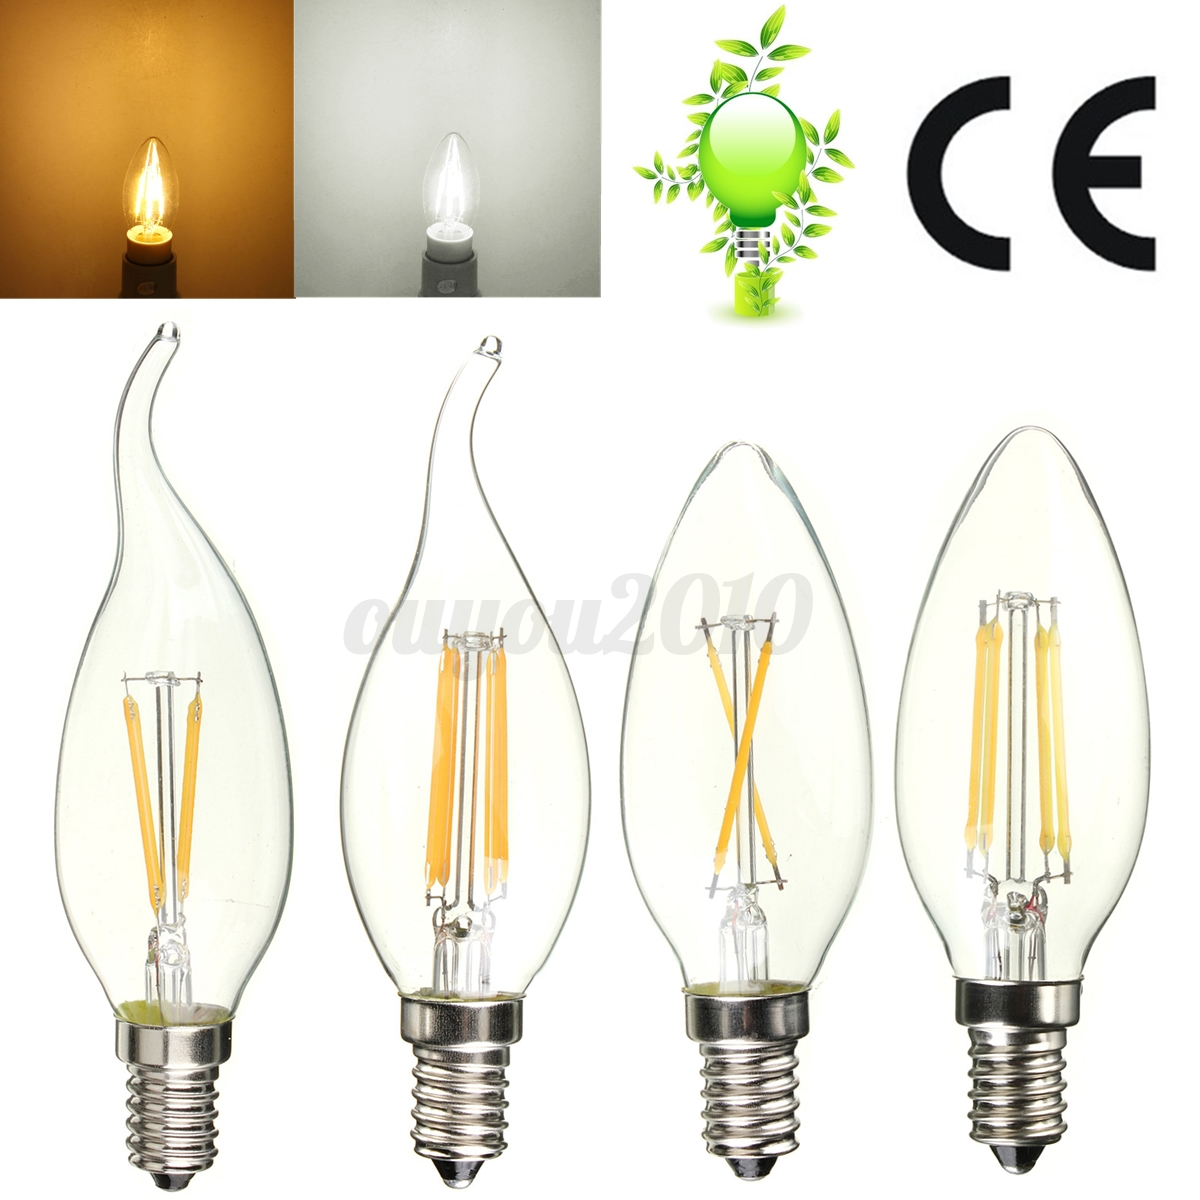 e14 2w 4w edison cob led filament gl hbirne kerzen lampe leuchte vintage licht ebay. Black Bedroom Furniture Sets. Home Design Ideas